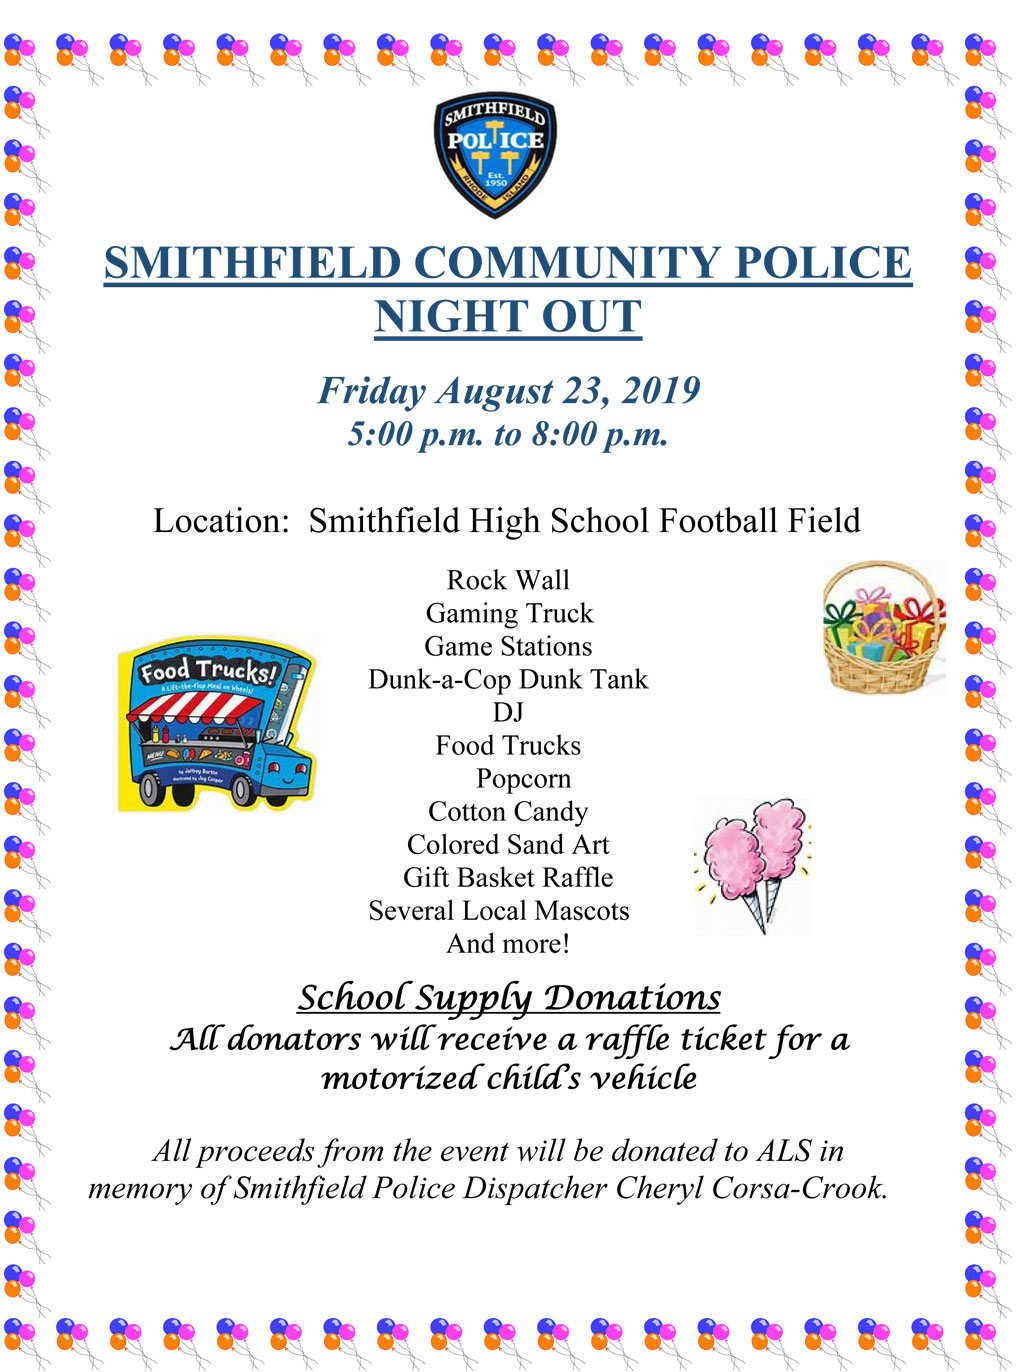 SPD to Host Community Police Night Out on Friday, August 23rd